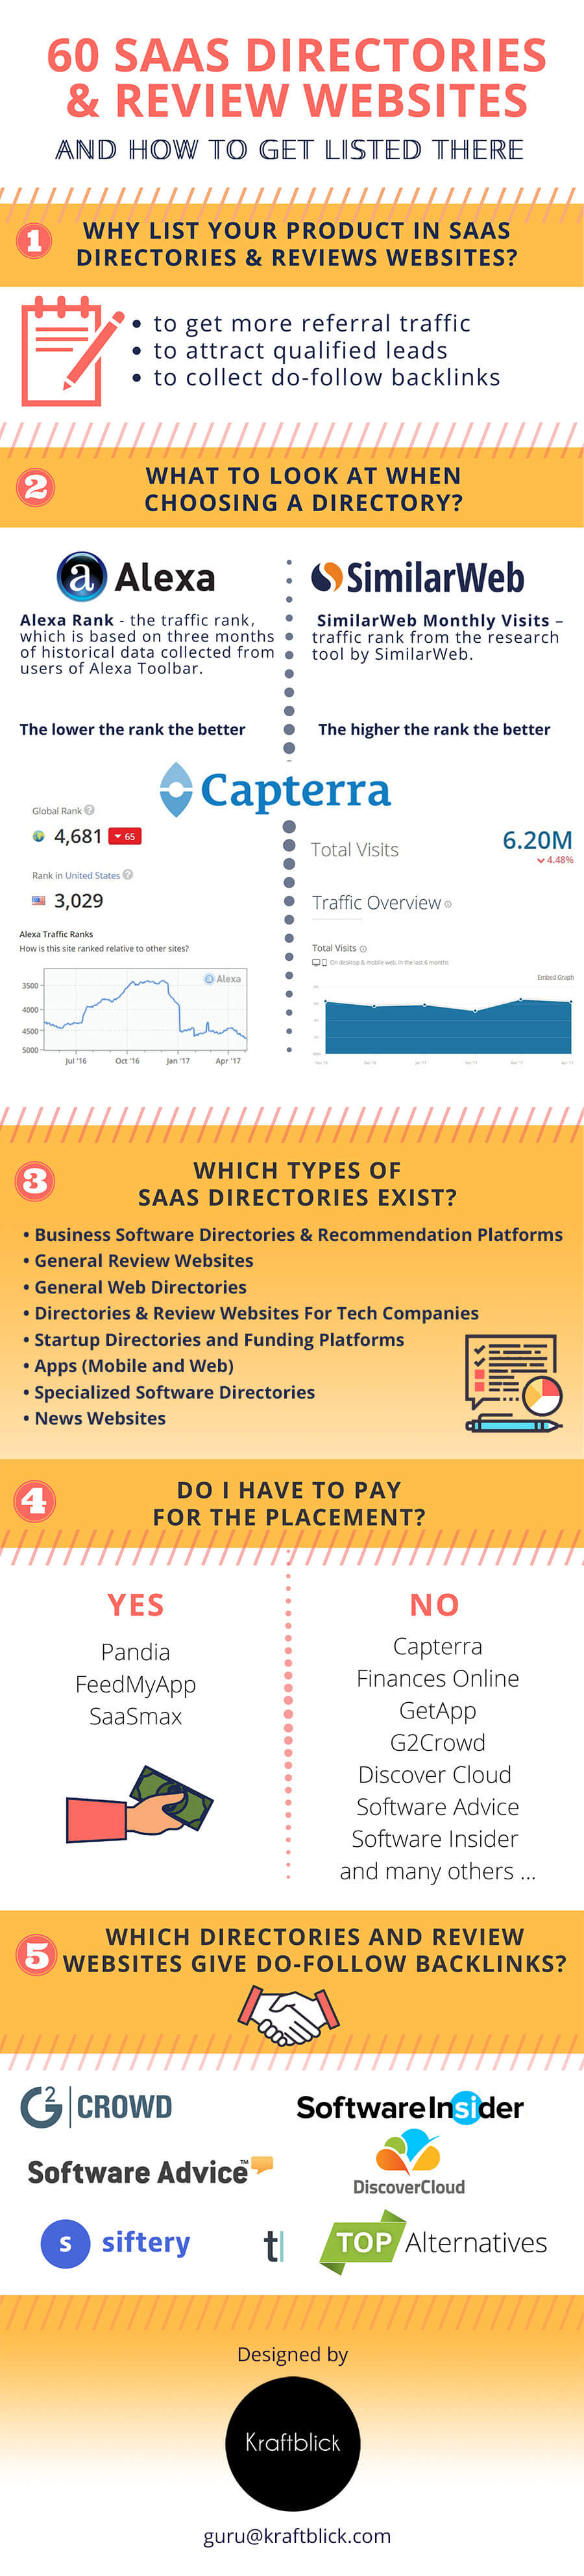 Infographic: 60 SaaS directories and review websites where you can list your business.